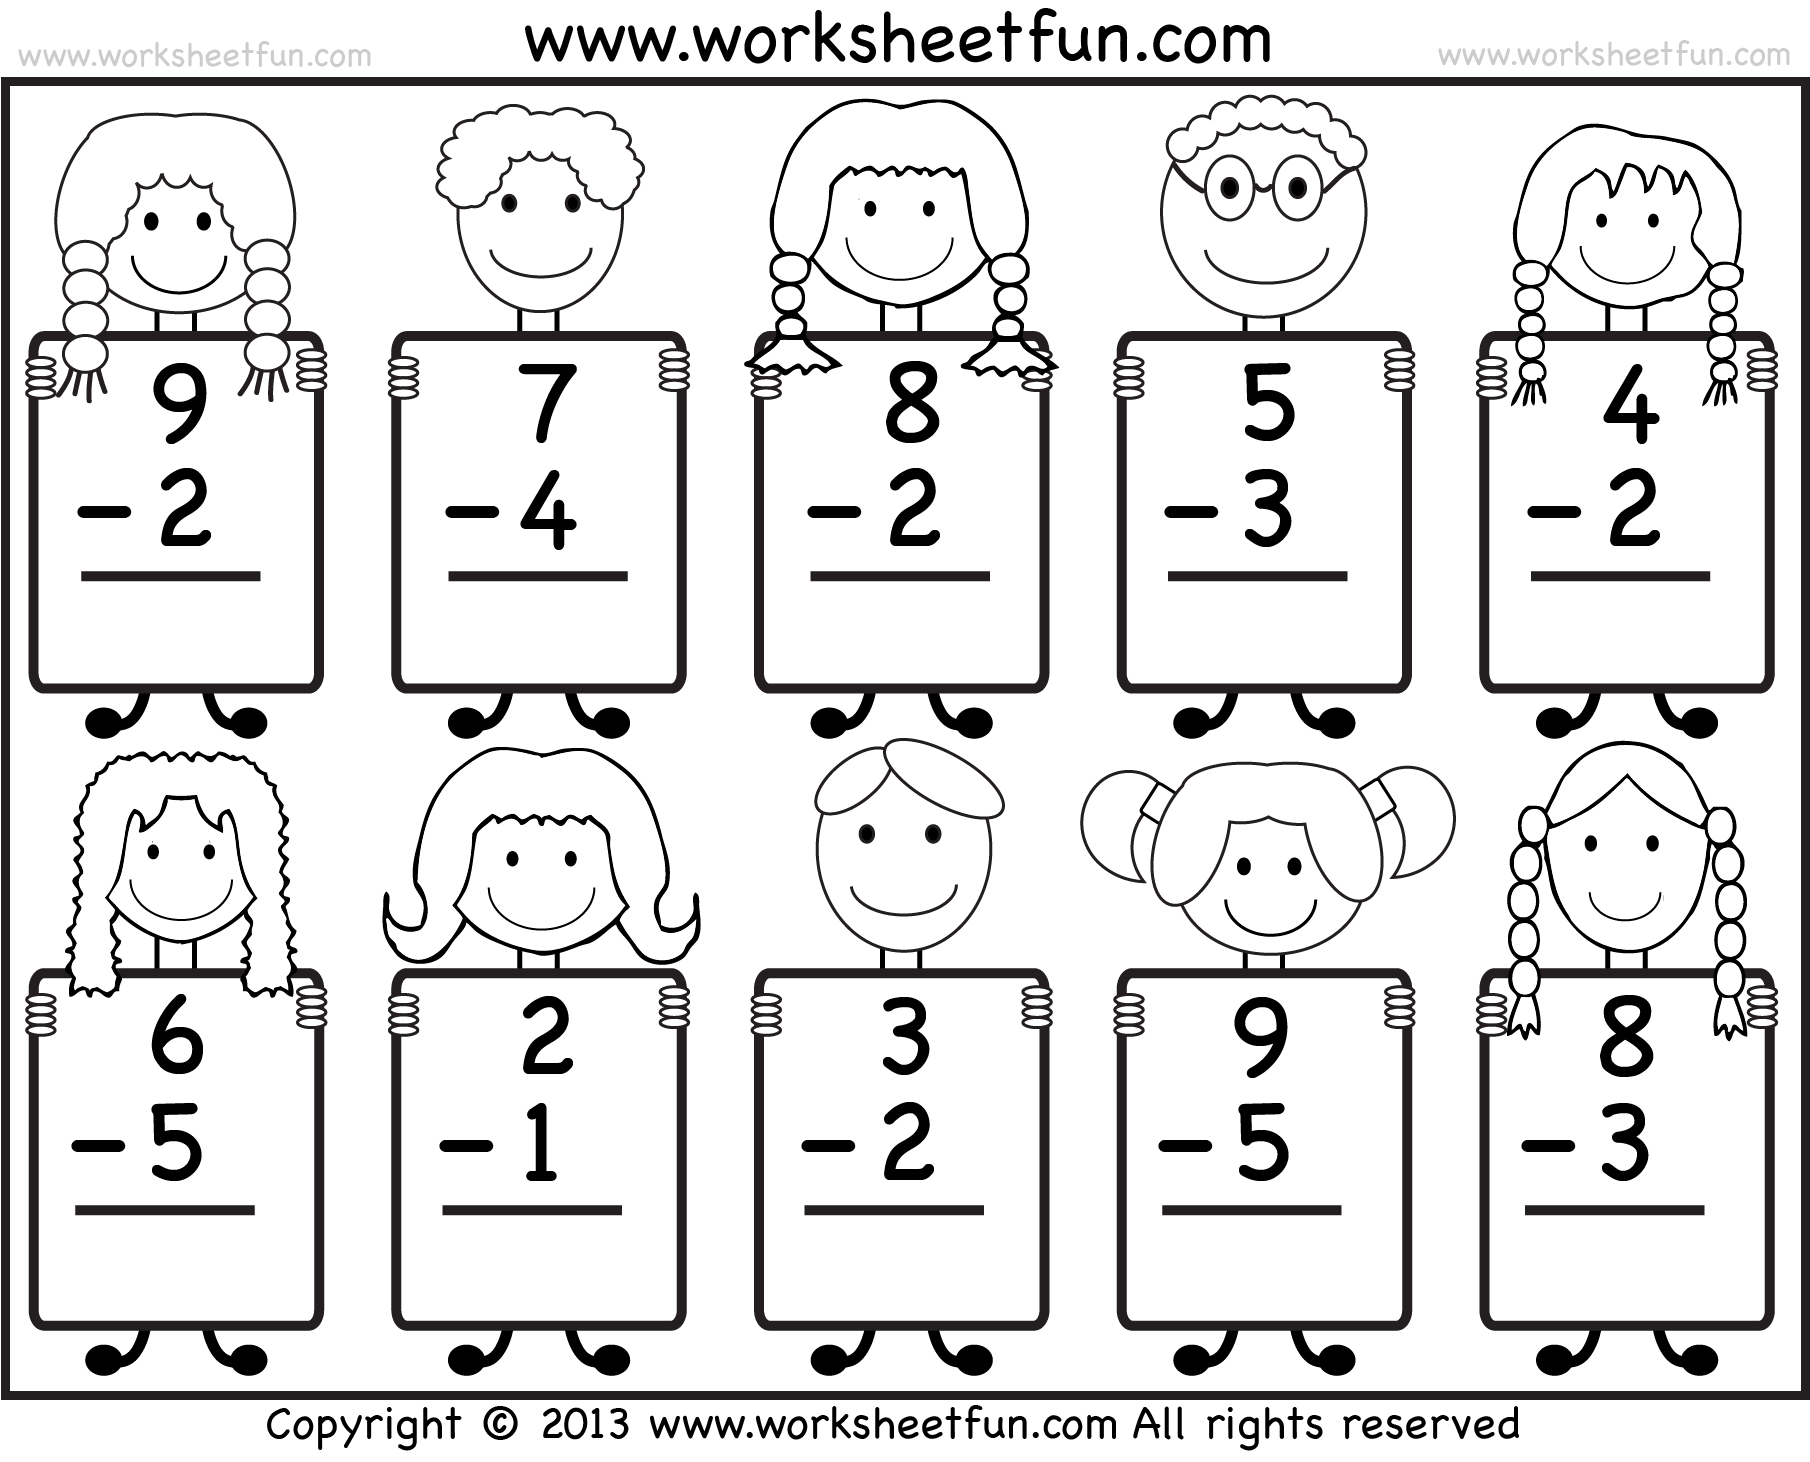 math worksheet : beginner subtraction  10 kindergarten subtraction worksheets  : Subtraction Worksheets For Kindergarten